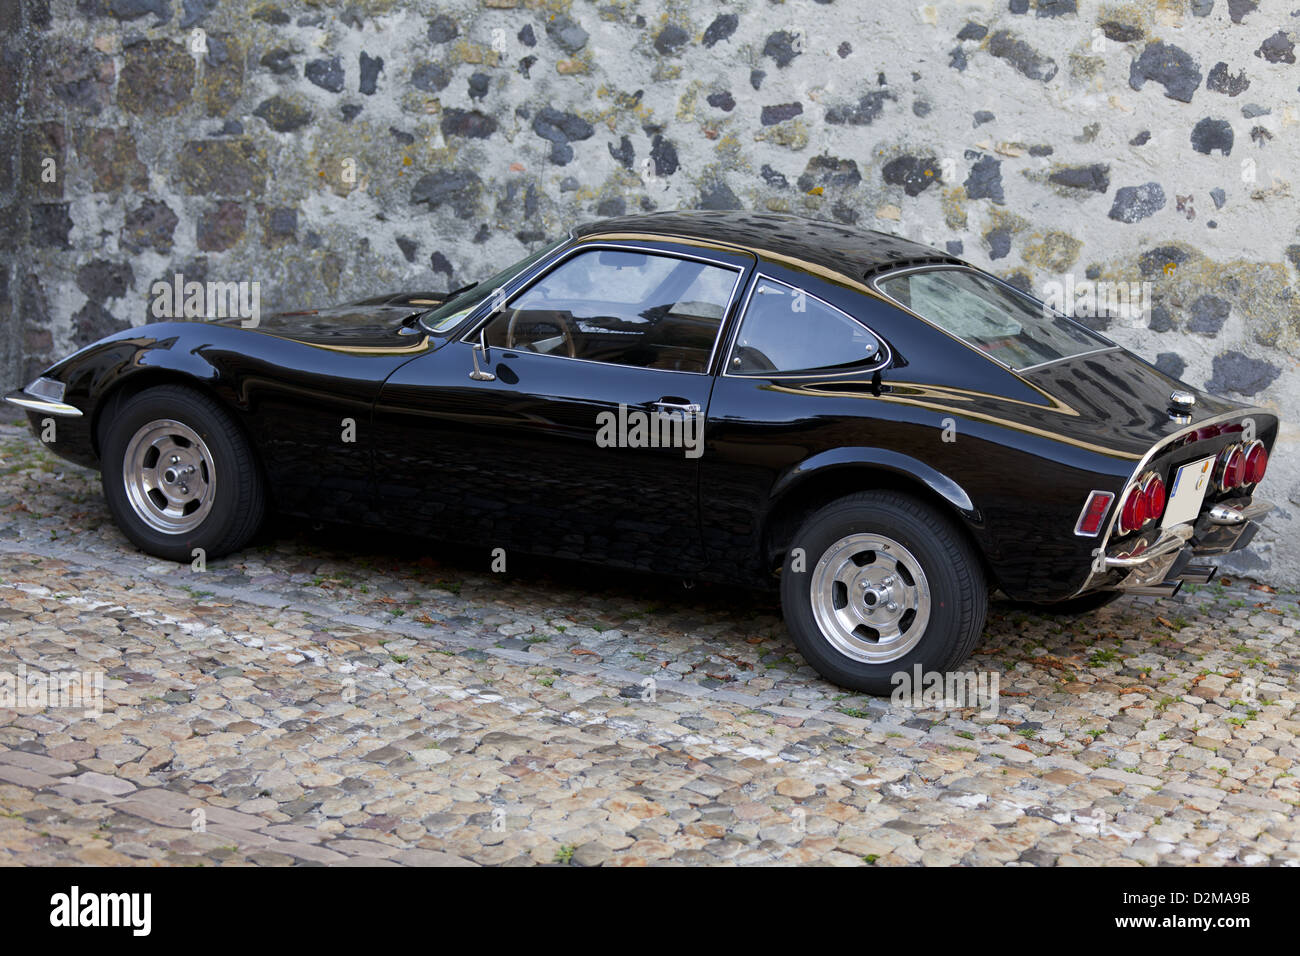 old german classic sport car opel gt stock photo royalty free image 53307559 alamy. Black Bedroom Furniture Sets. Home Design Ideas